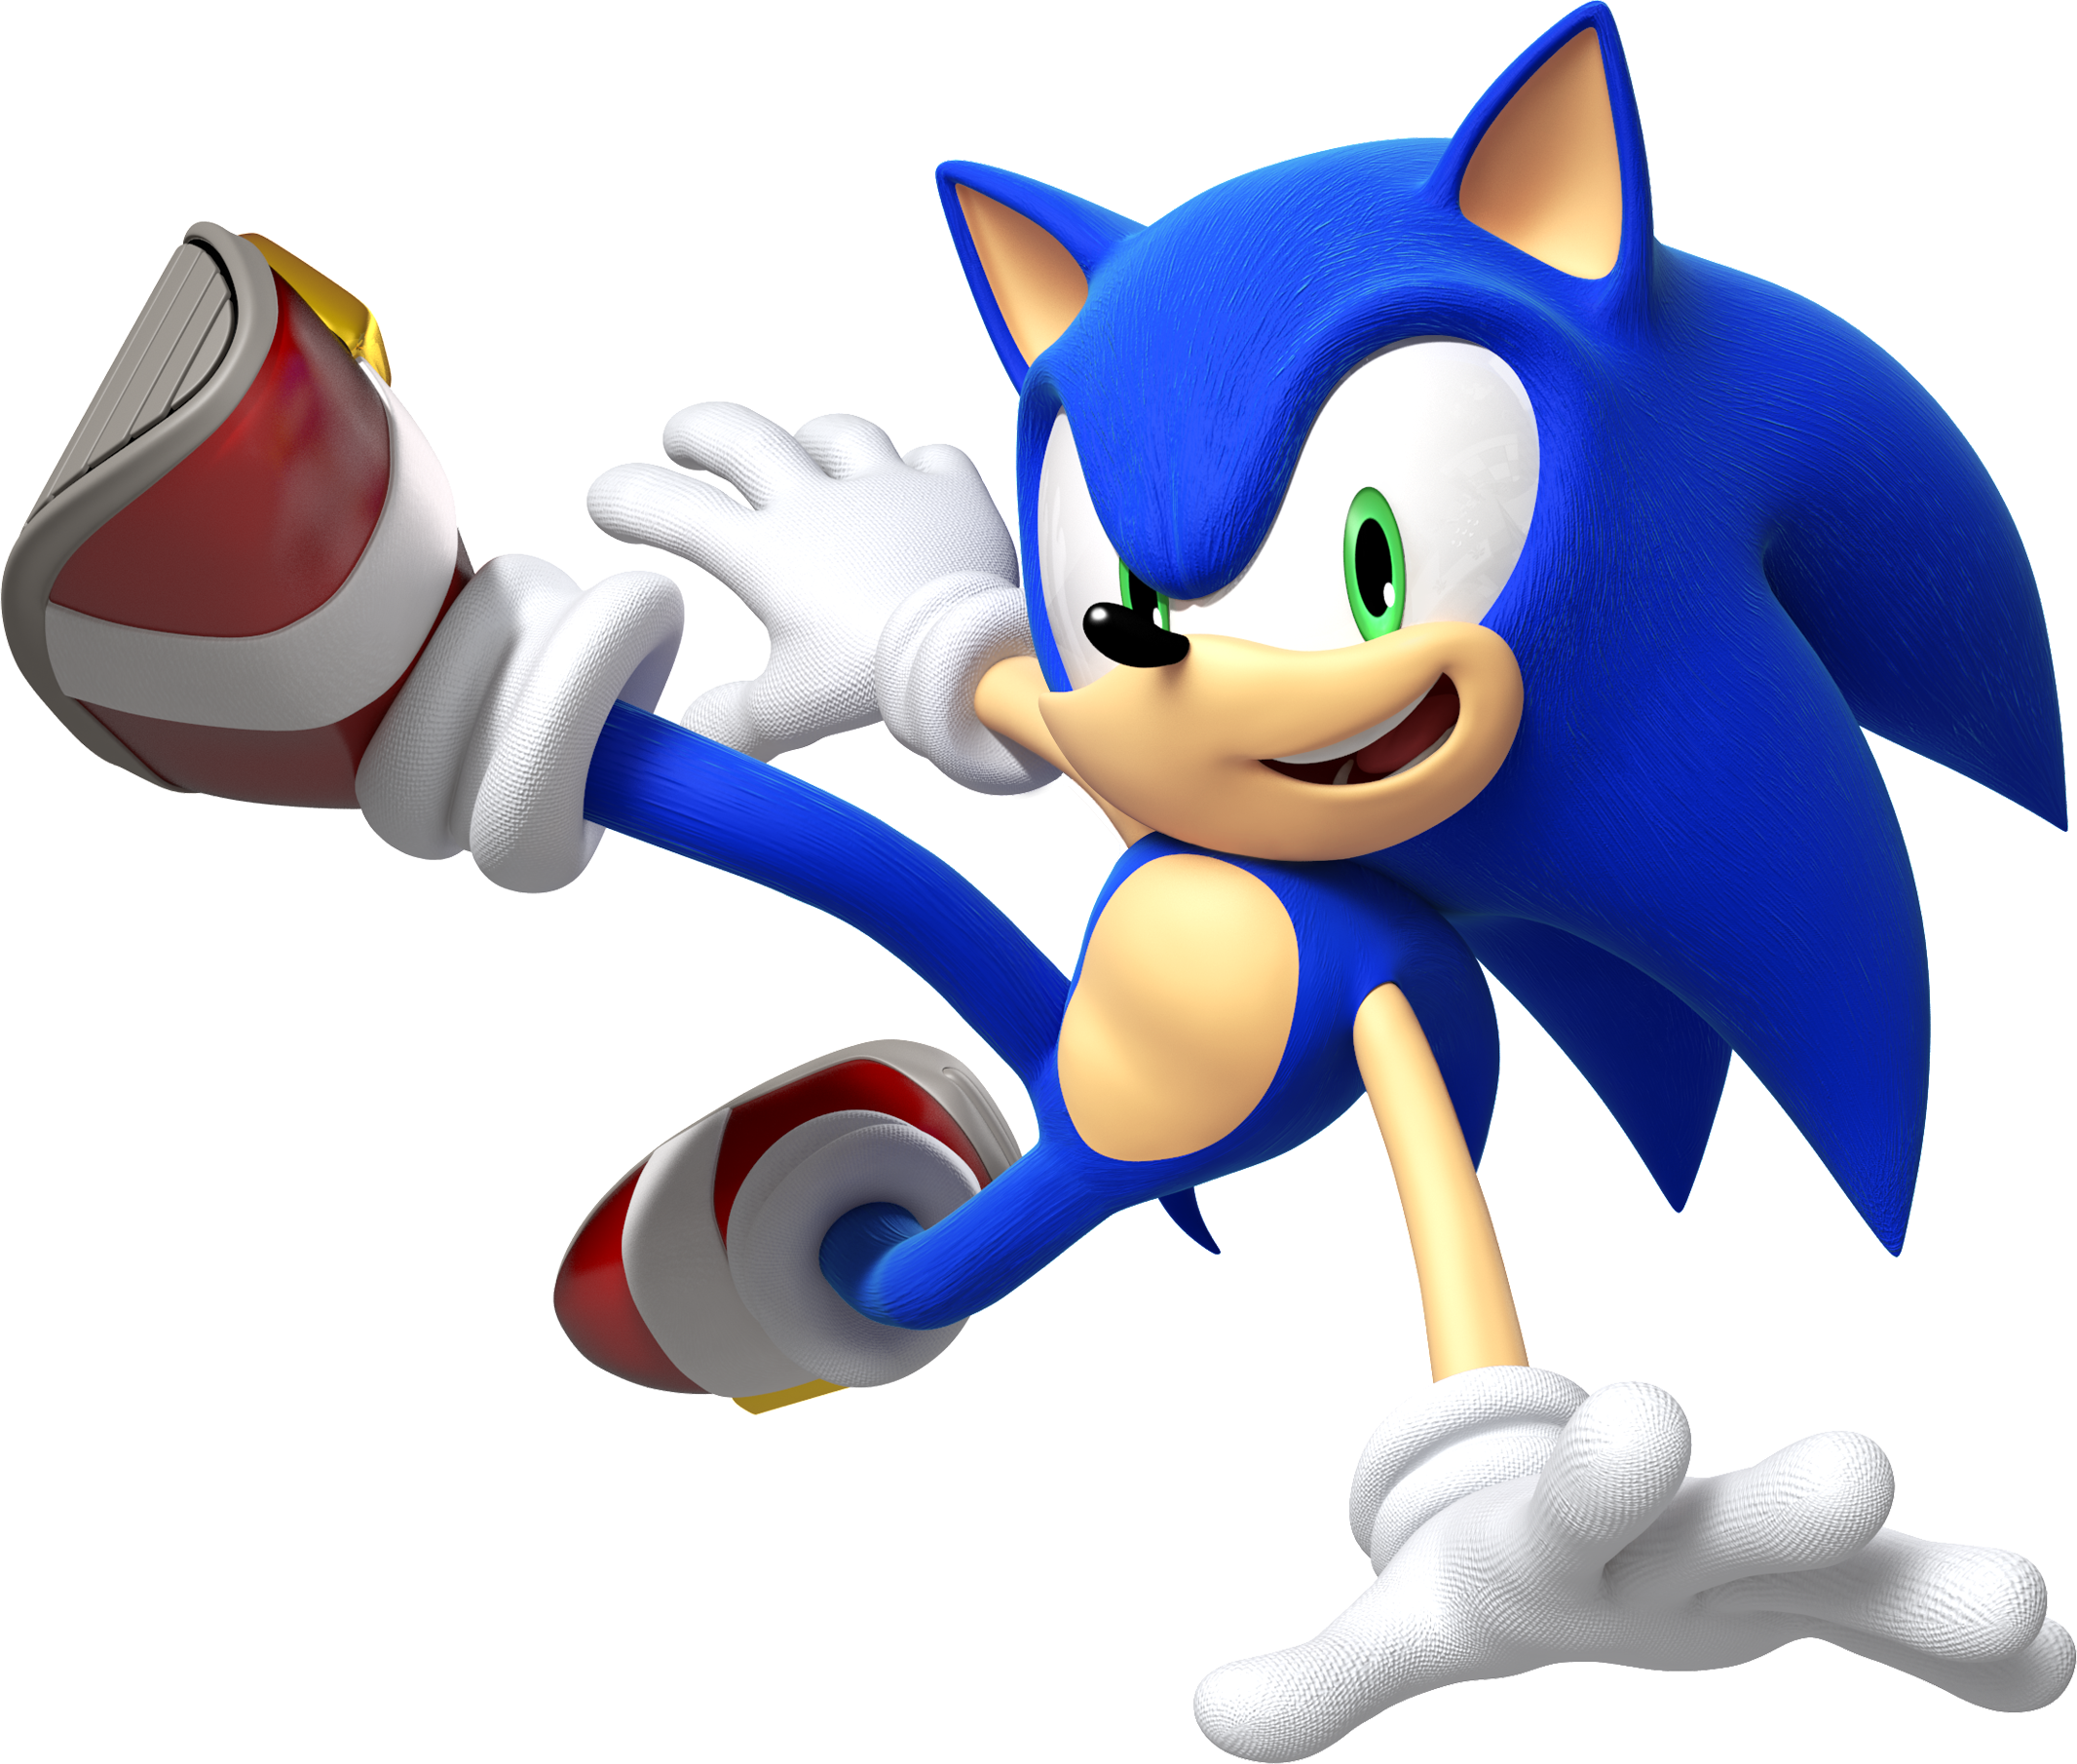 Sonic the Hedgehog - Sonic HD PNG